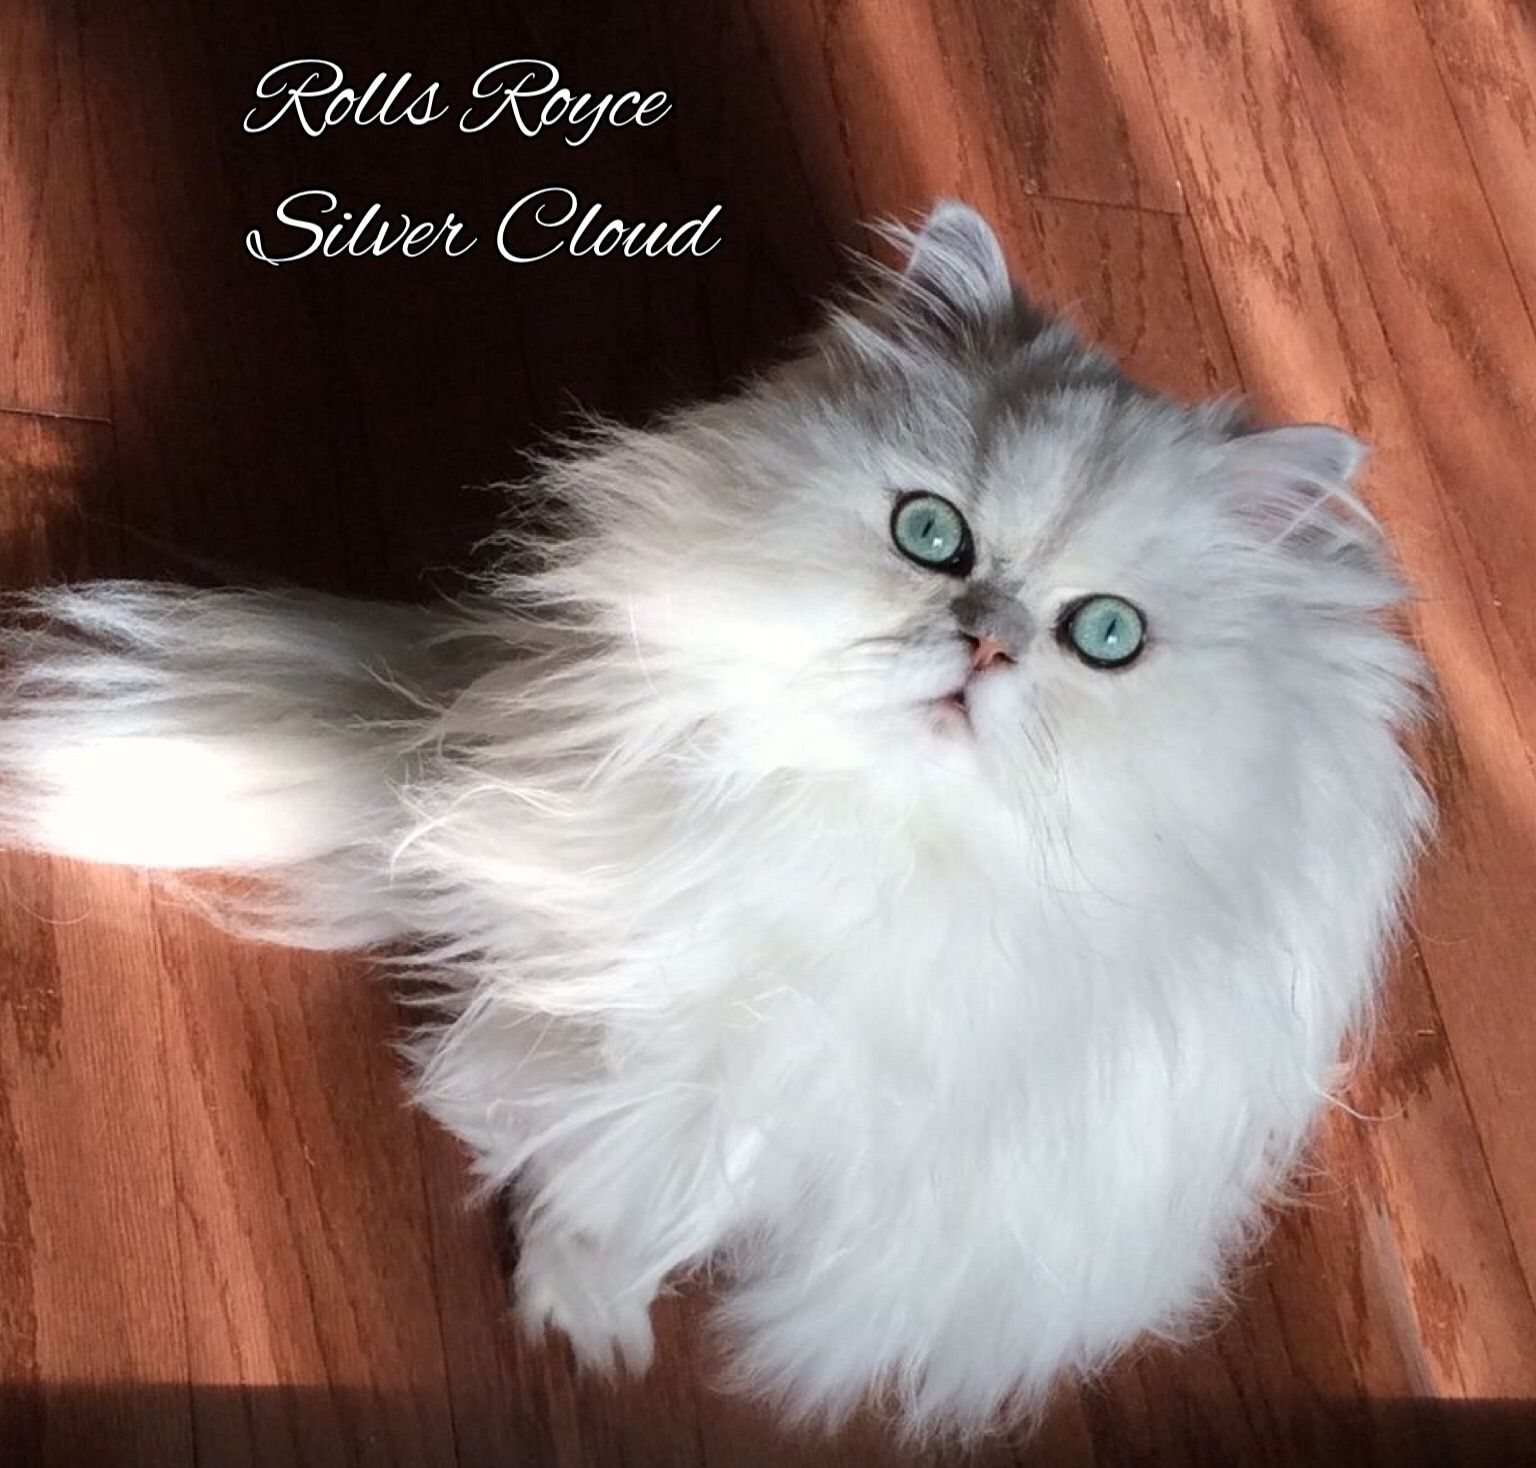 Chinchilla Silver Persian Rolls Royce Silver Cloud Copy Cat Purrfection Beautiful Cats Cats And Kittens Cat Breeds